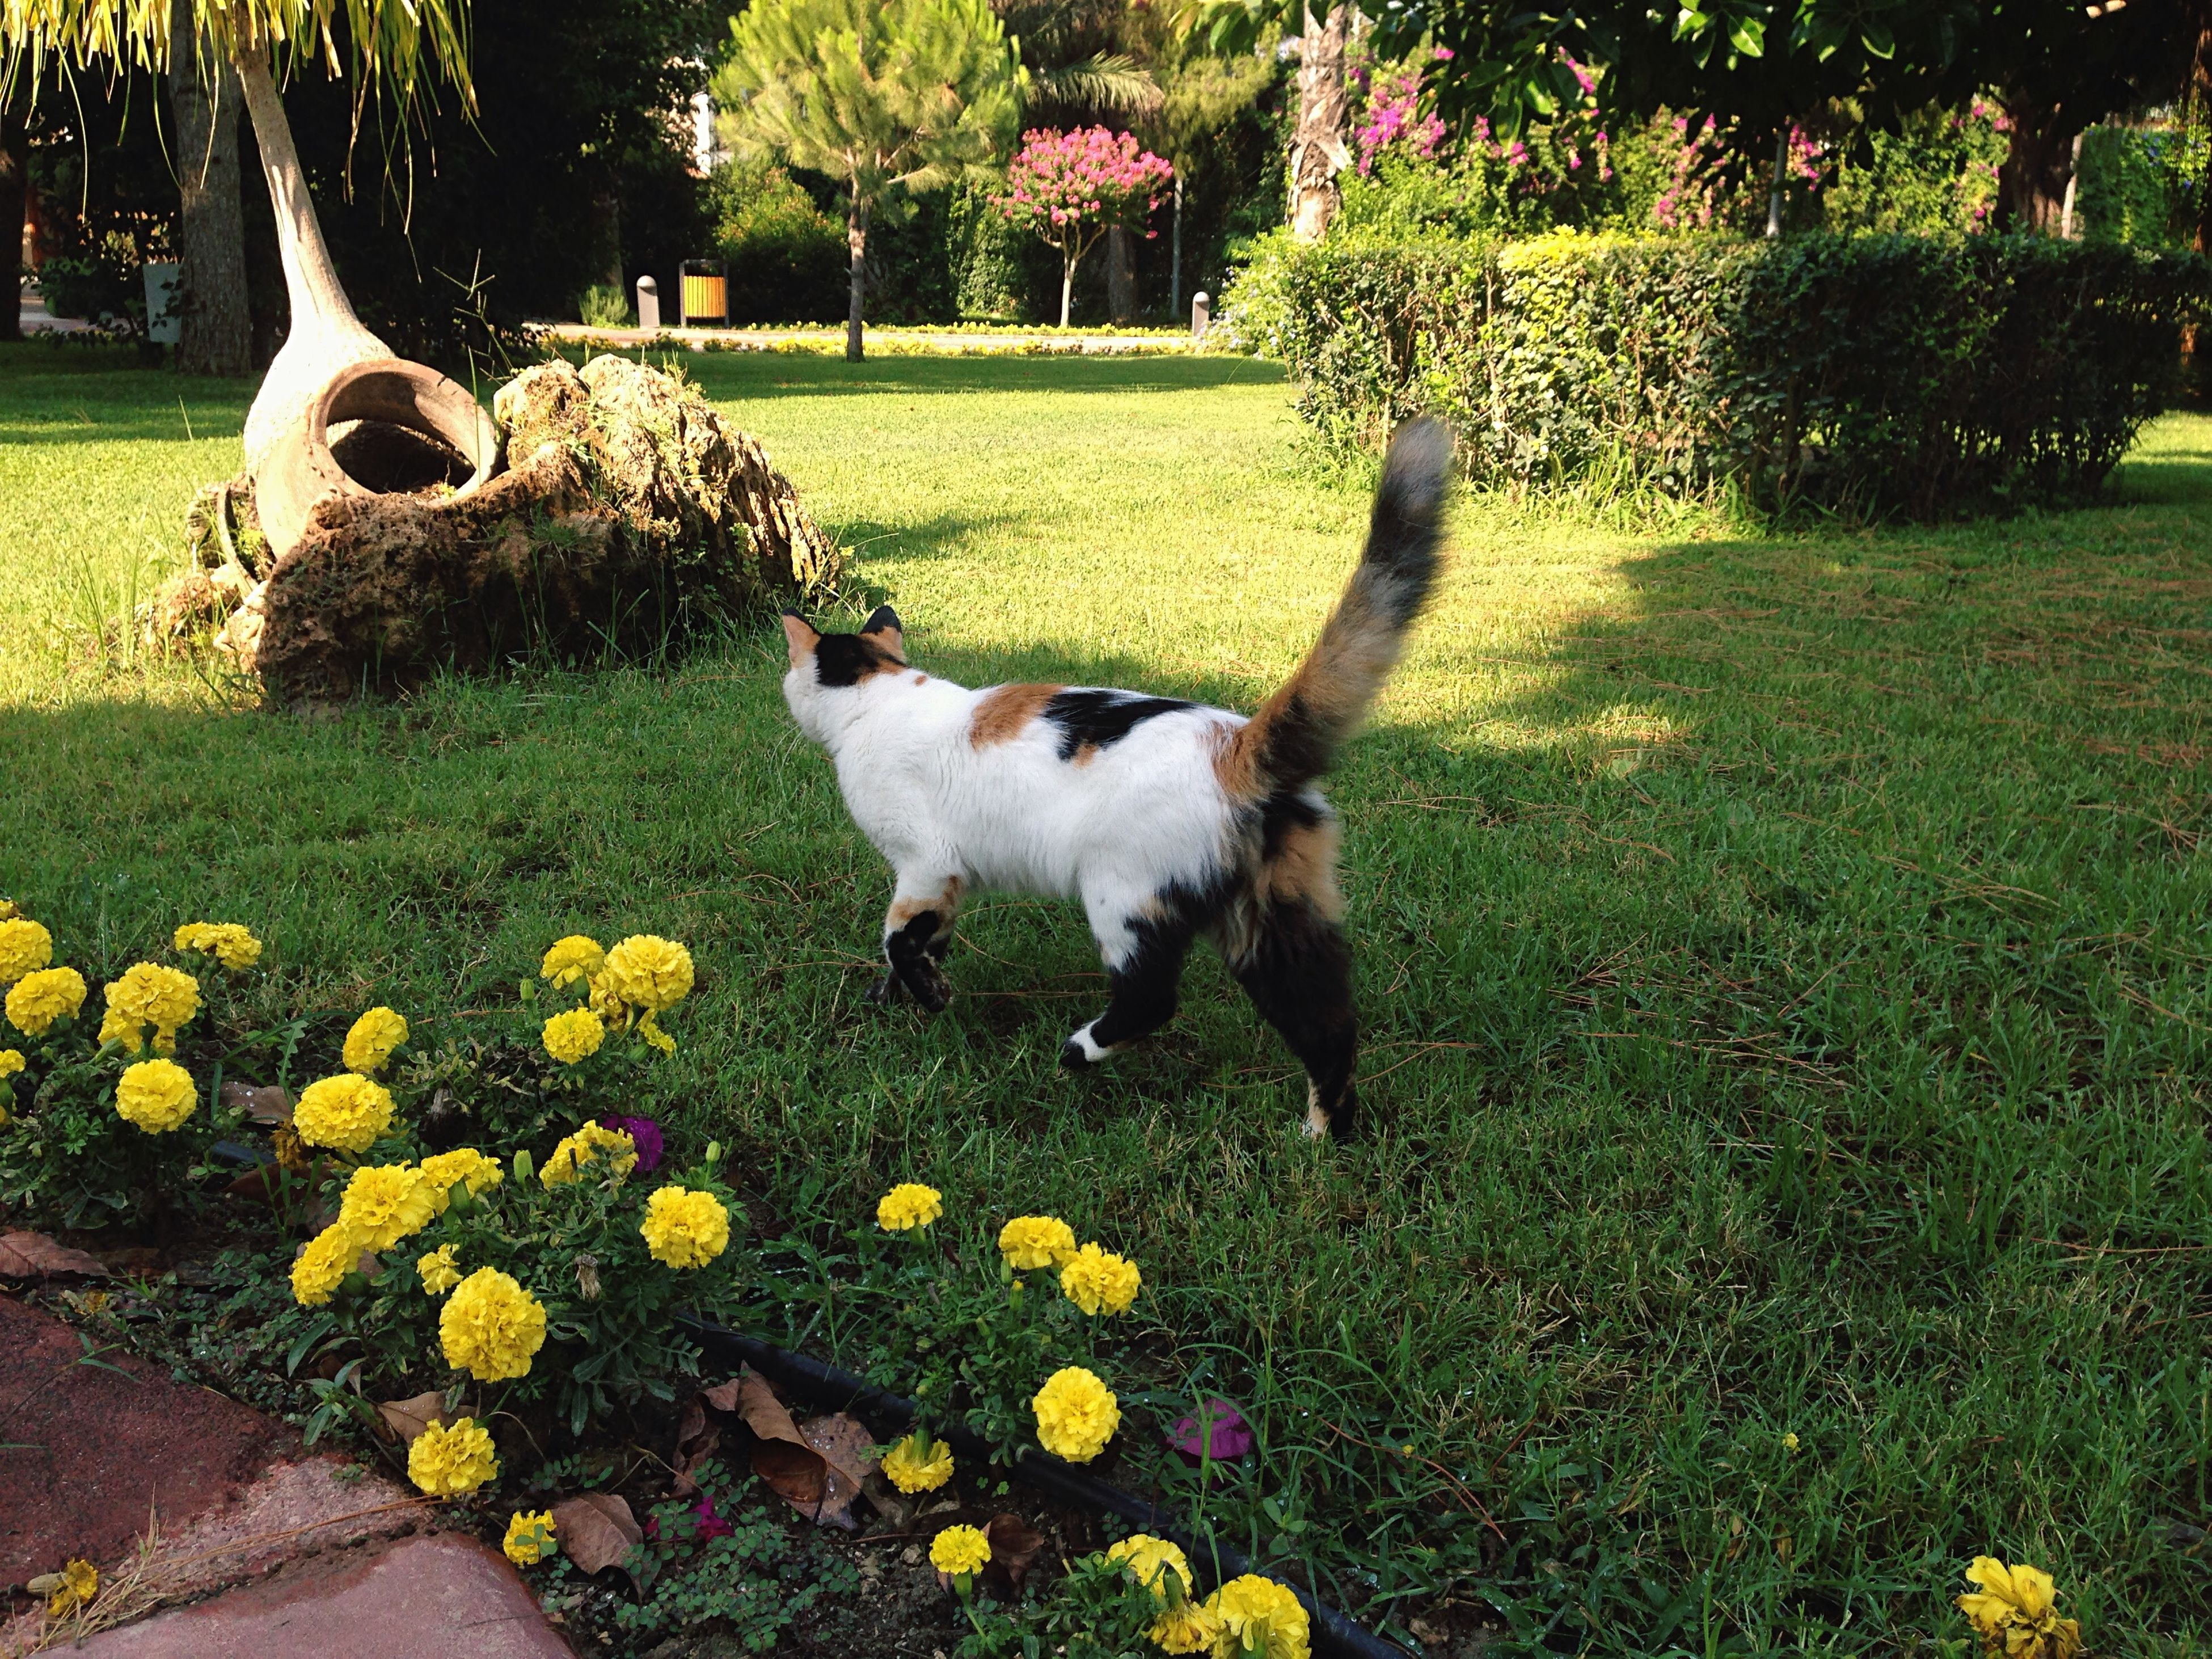 domestic animals, pets, mammal, animal themes, one animal, grass, dog, flower, field, growth, green color, grassy, plant, lawn, park - man made space, front or back yard, domestic cat, standing, nature, full length